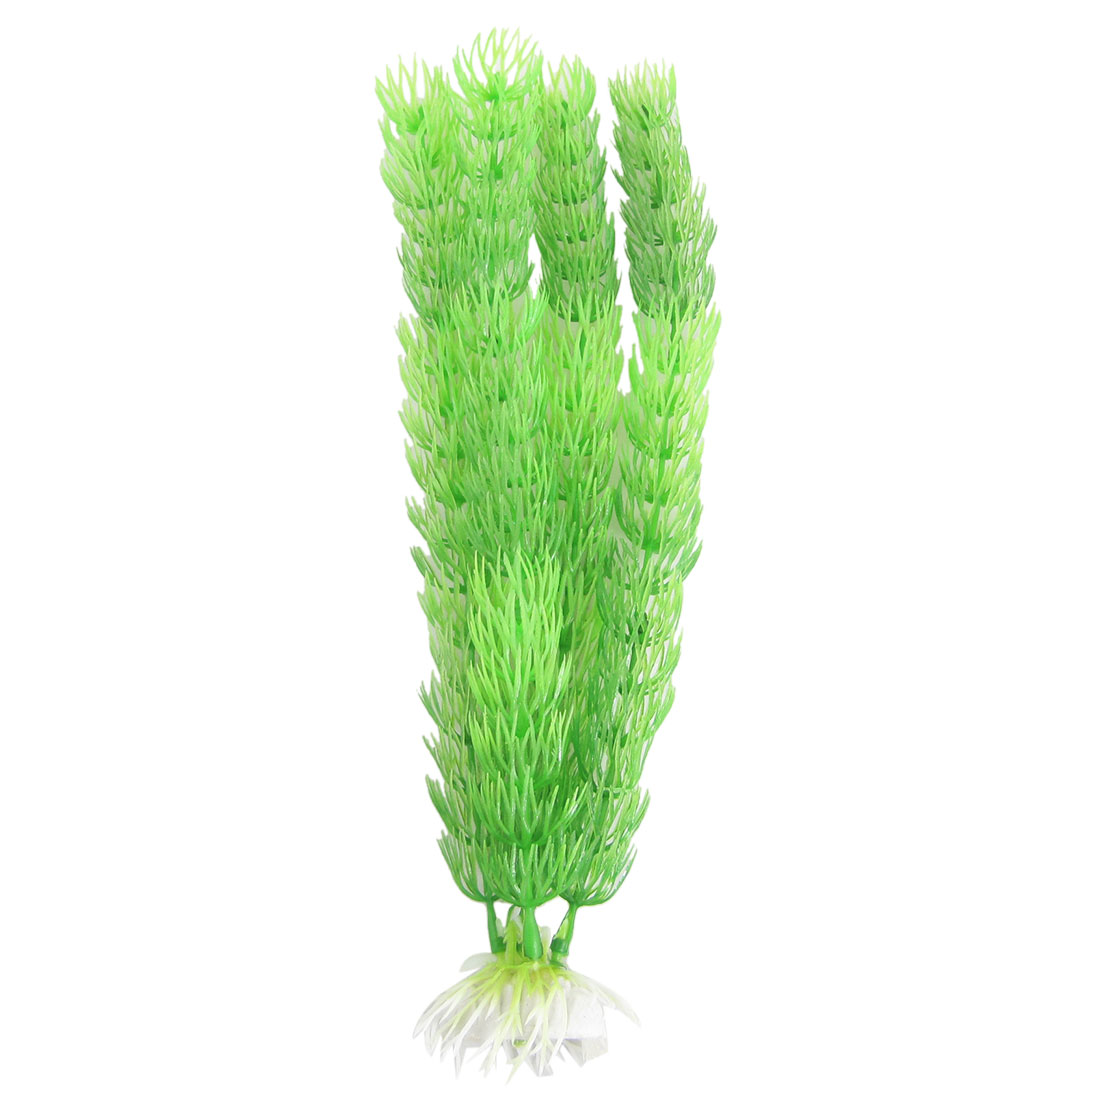 Ceramic Base Fish Tank Plastic Grass Green Plants Decor 9.8""